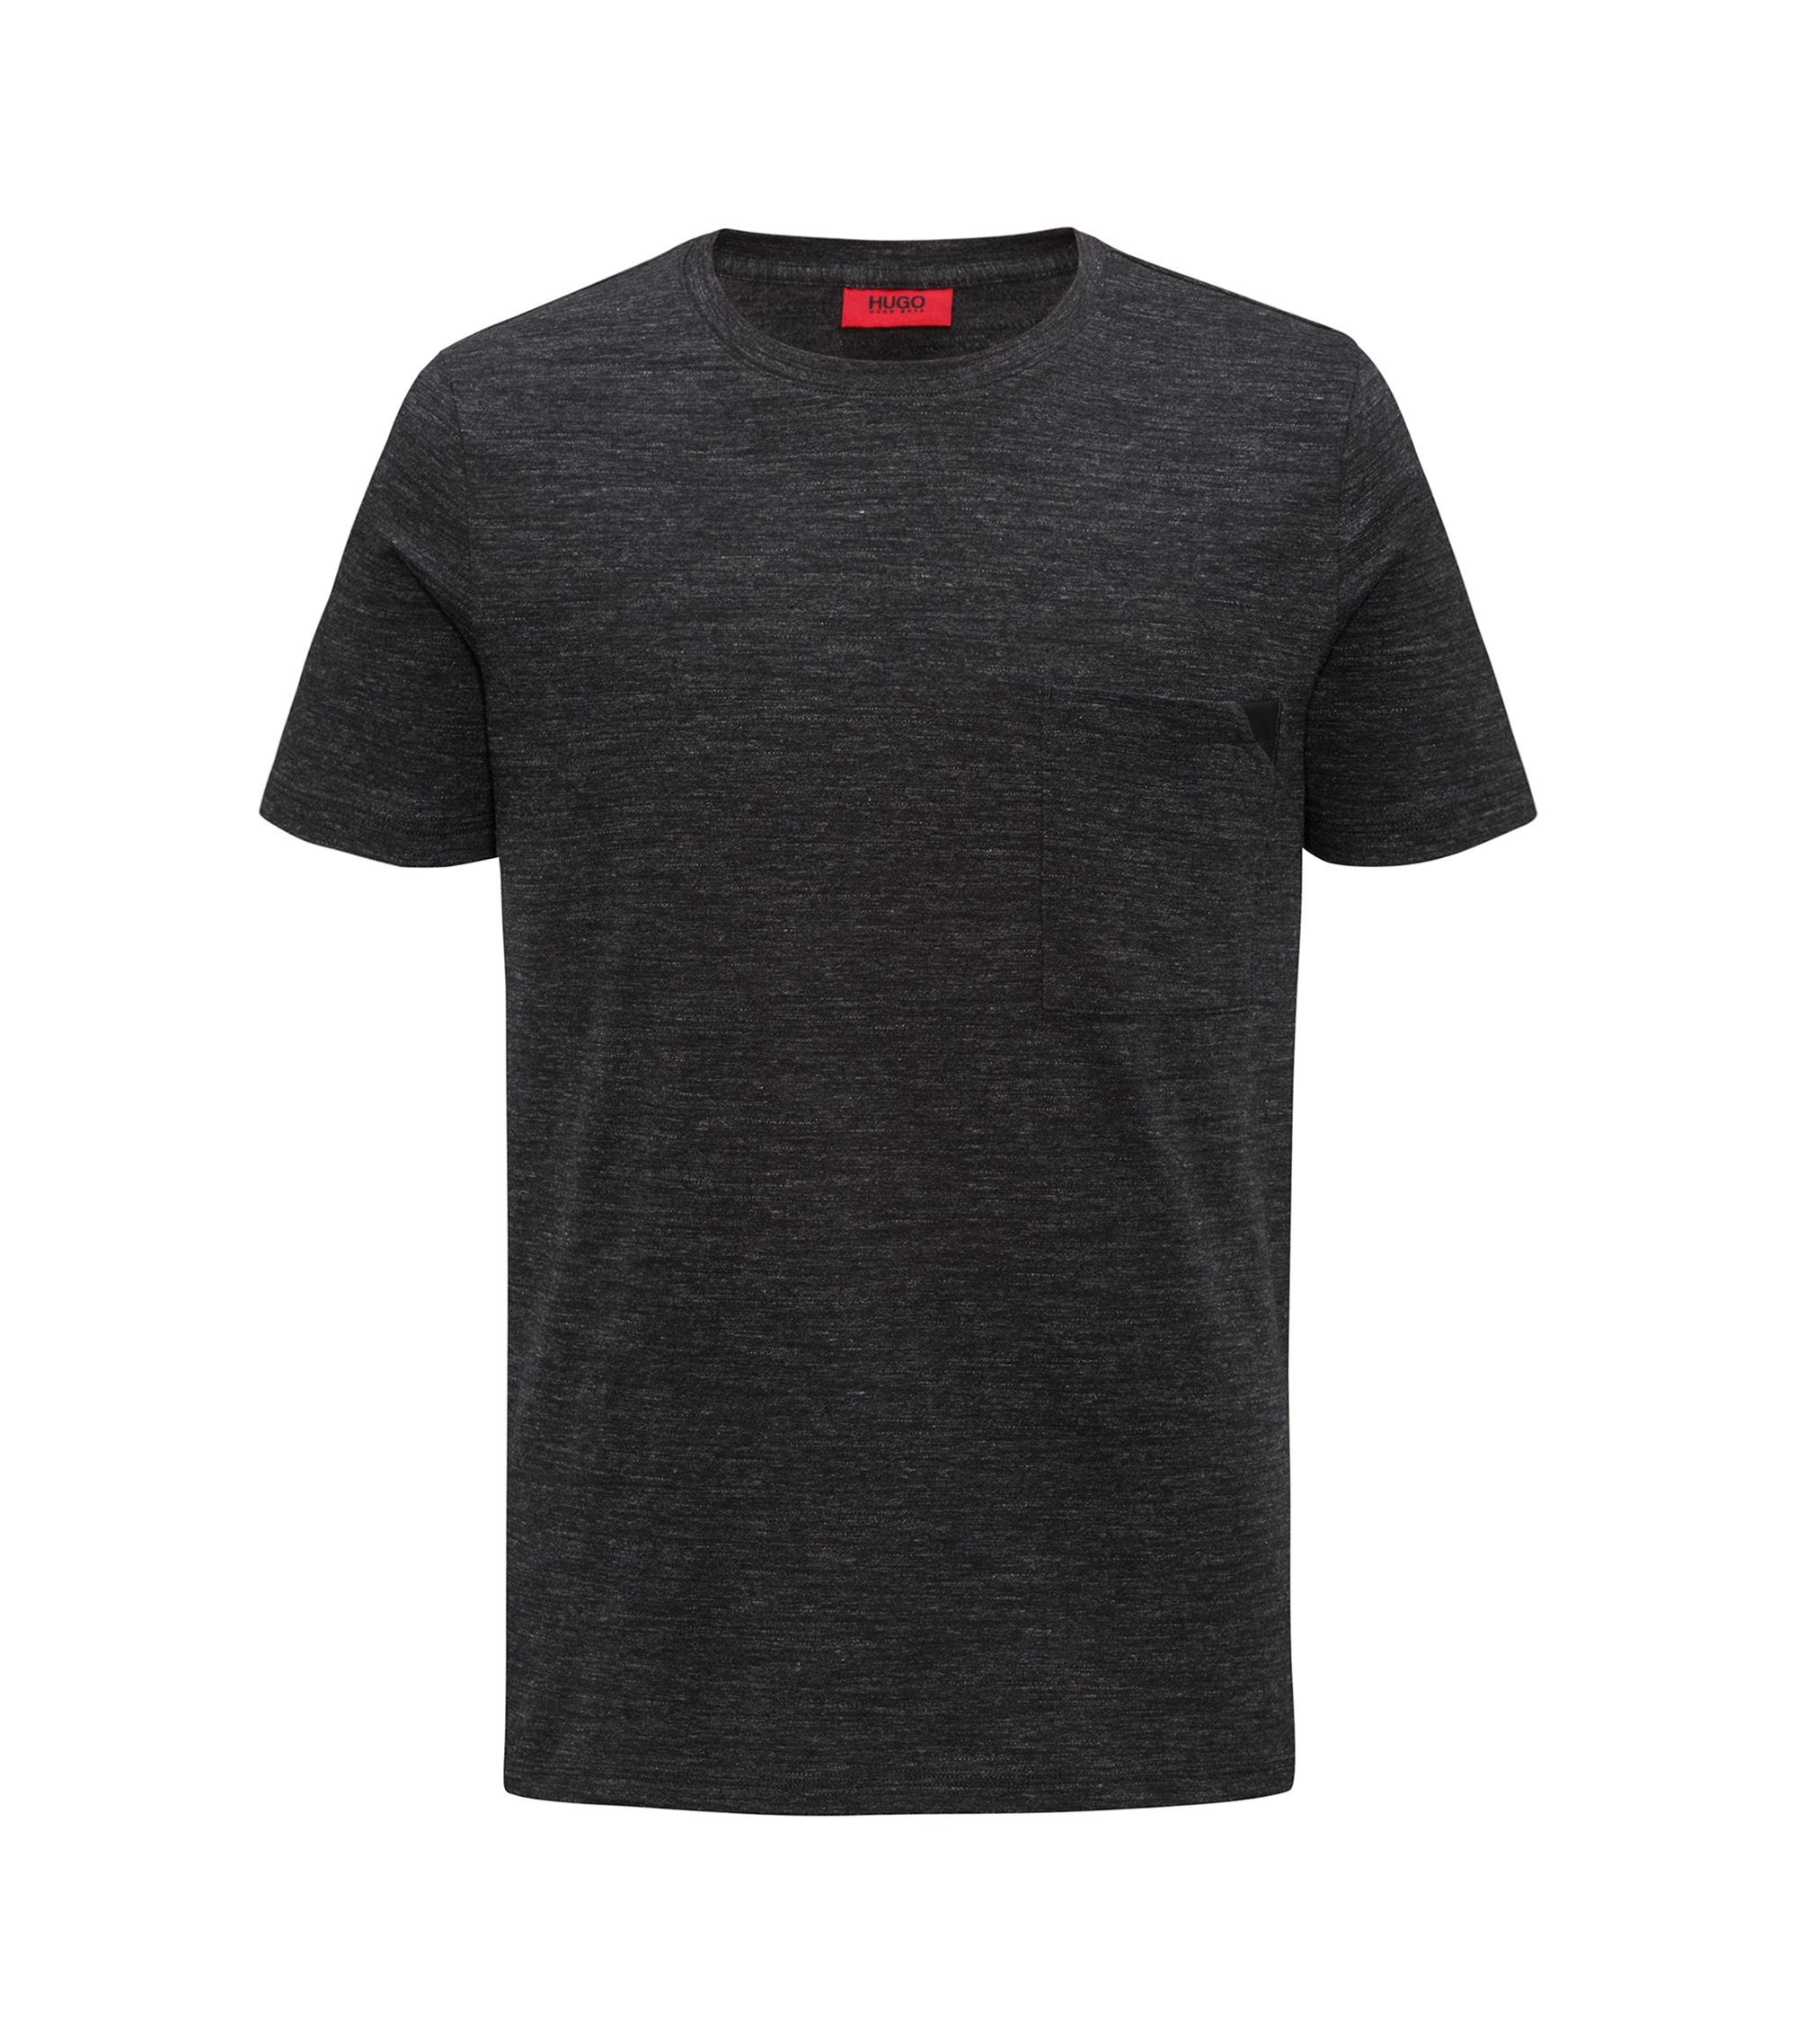 Faux Leather-Trim Cotton T-Shirt | Dohnny, Black